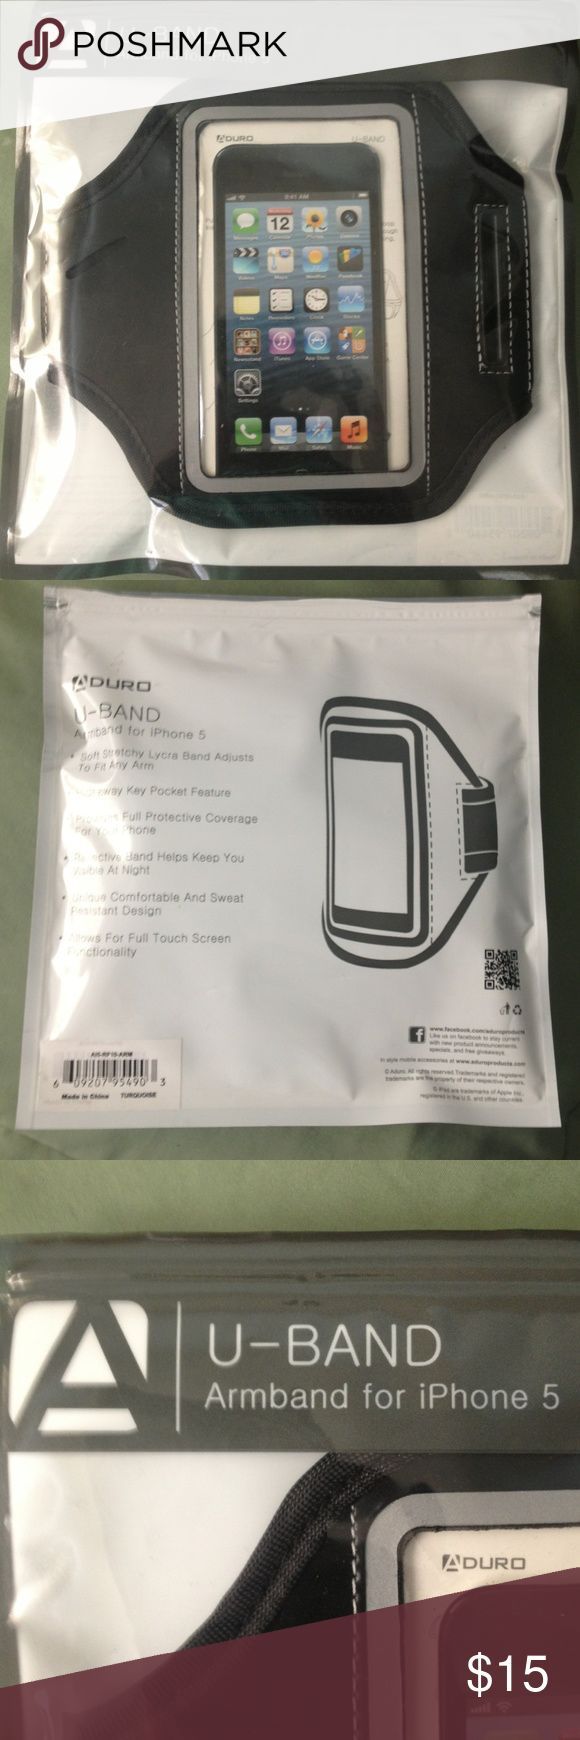 Aduro U-Band Armband for iPhone 5 Aduro U-Band Armband for I.Phone5 black NIP Aduro Accessories